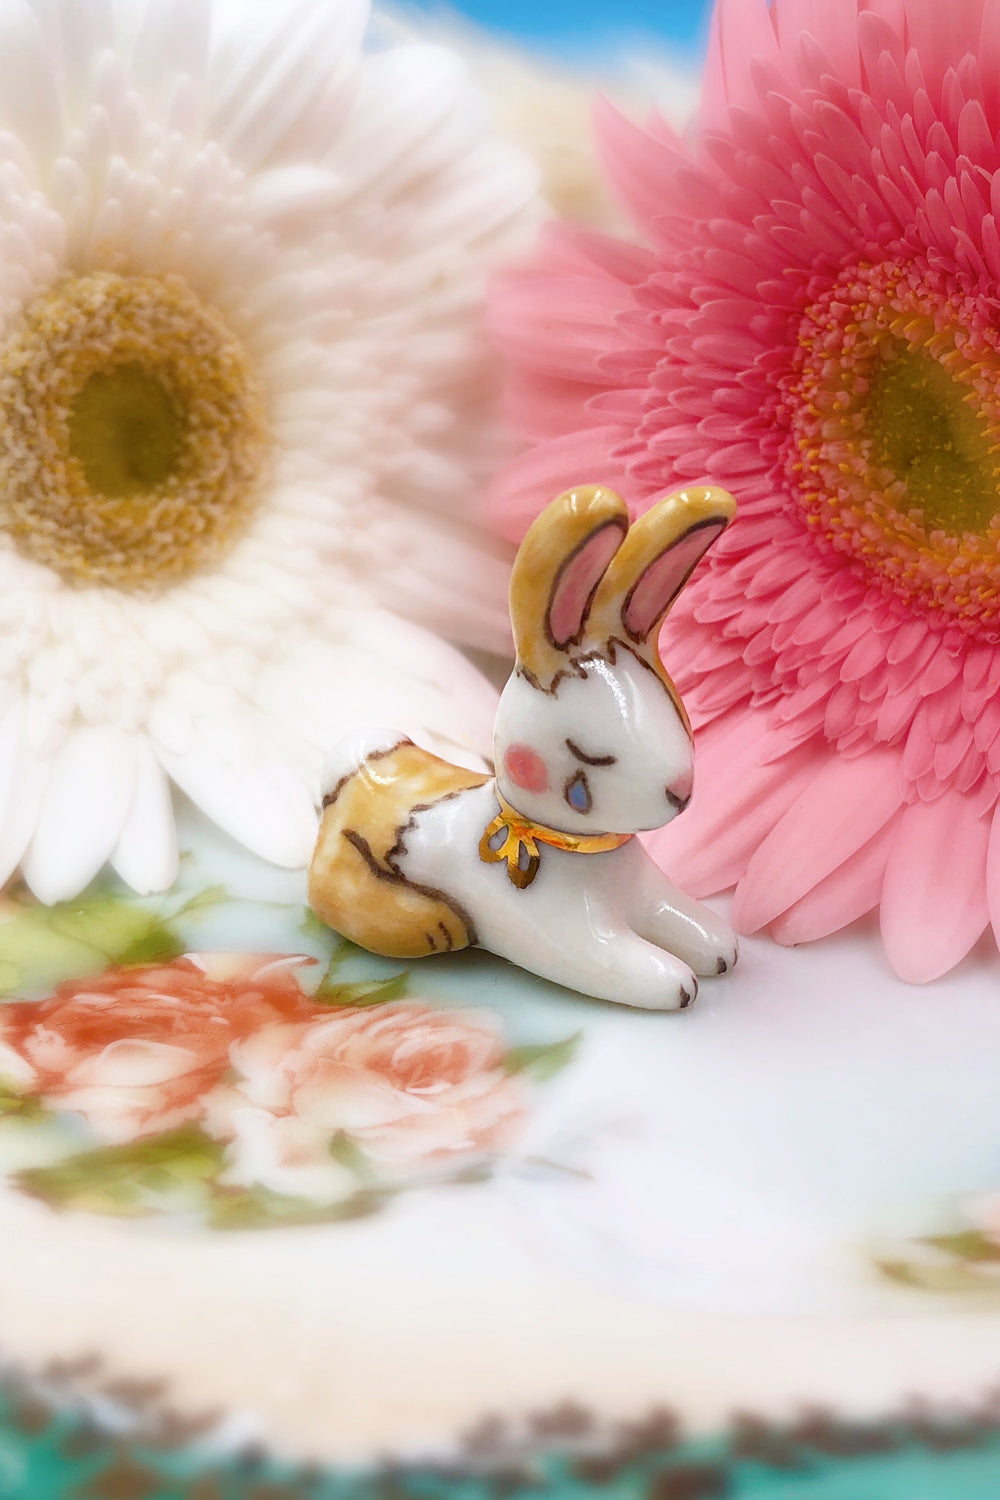 Porcelain Crying Bunny